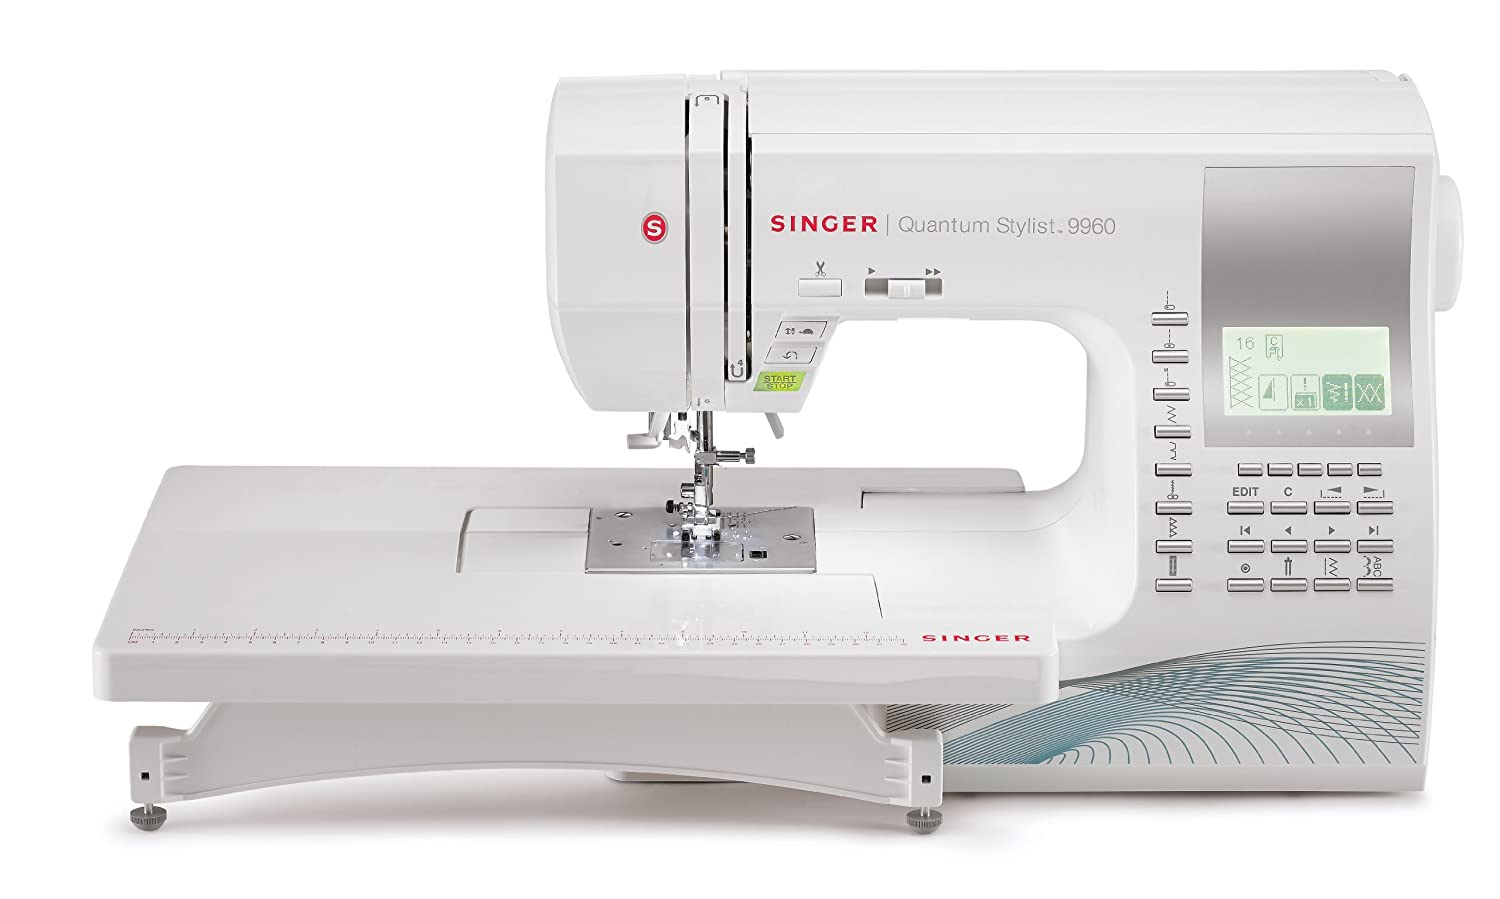 Singer 9960 quantum stylist 600 stitch computerized sewing machine with extension table bonus accessories and hard cover amazon ca home kitchen